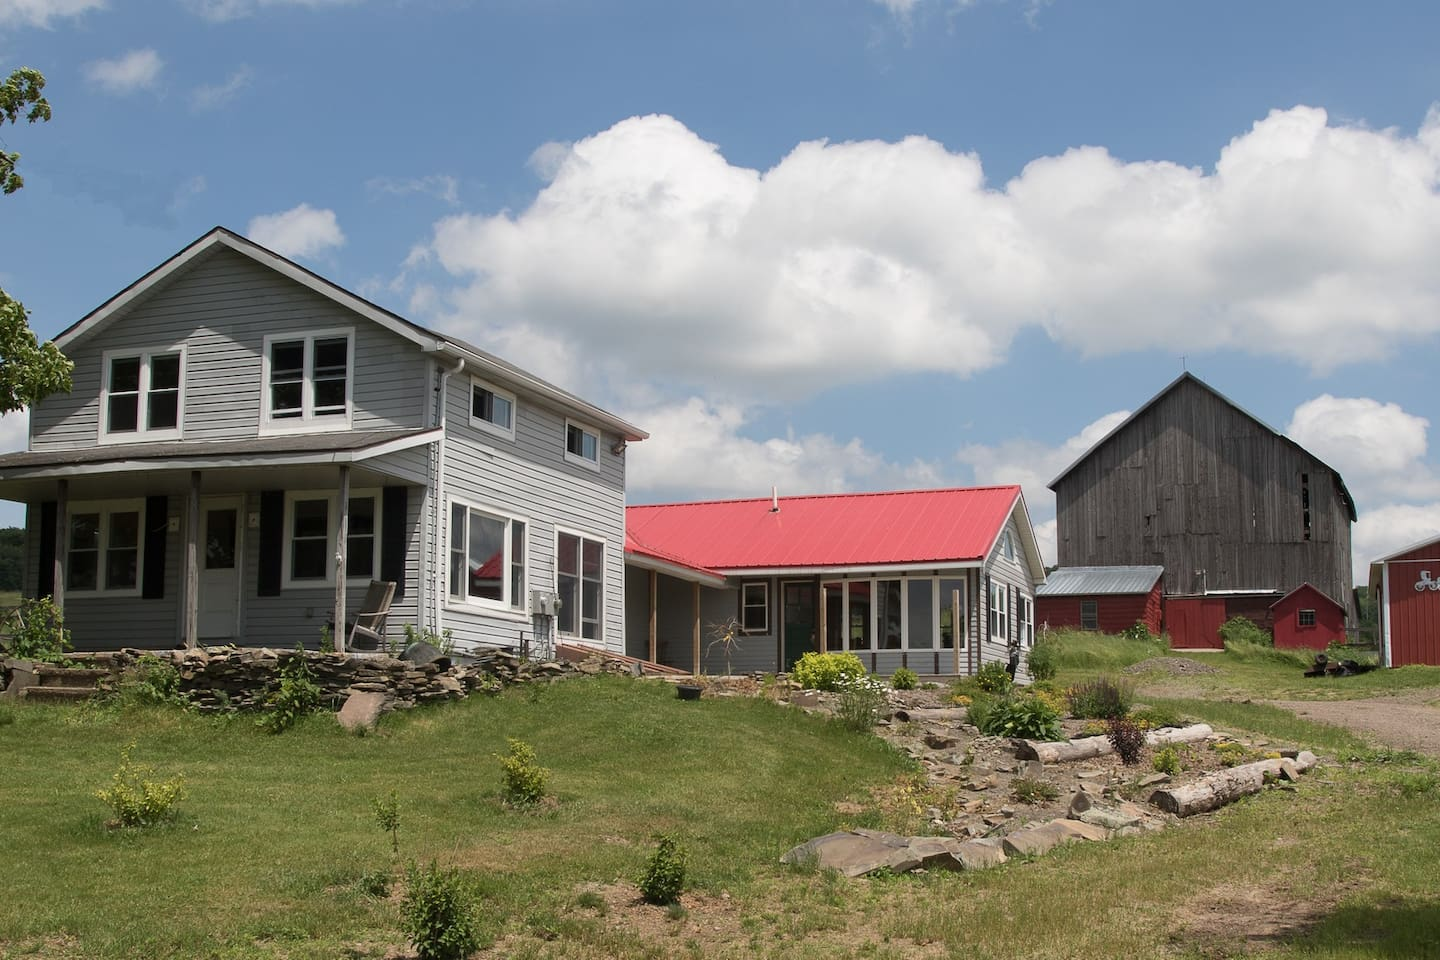 Mills Farm Retreat is the Black Roofed building. The Guest Quarters are Red roofed and the Camper is across the driveway